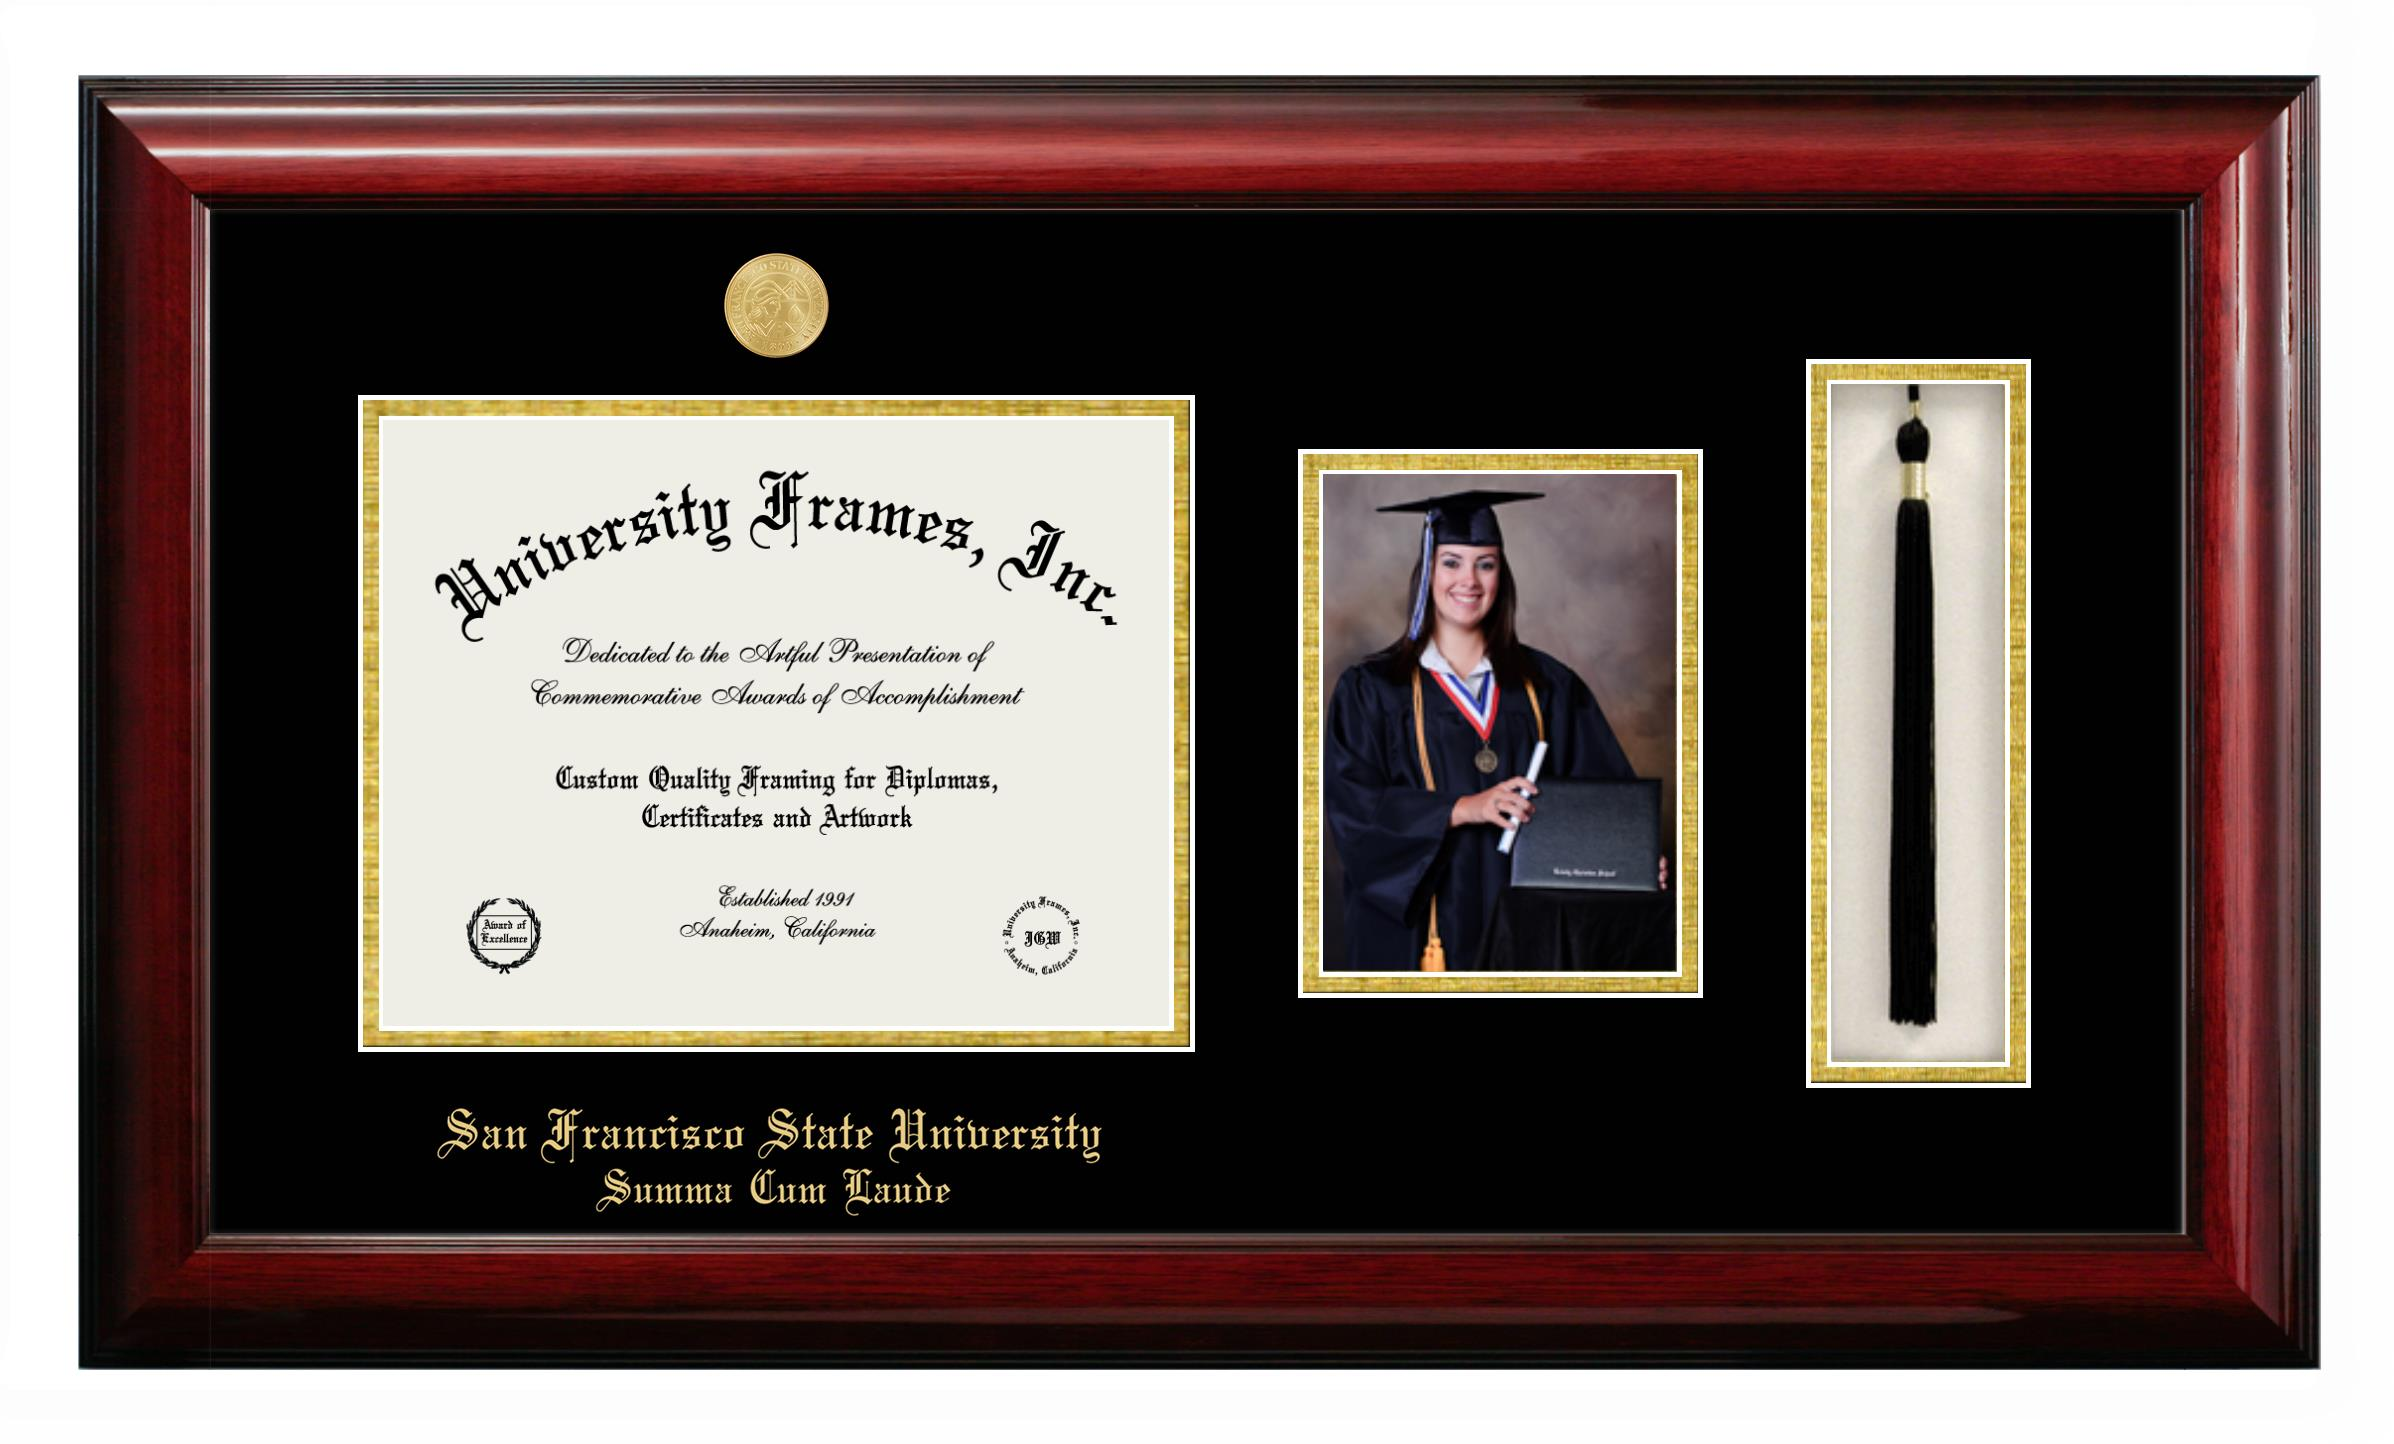 San Francisco State University Summa Cum Laude Diploma With 5 X 7 Portrait Tassel Box Frame In Classic Mahogany With Black Gold Mats